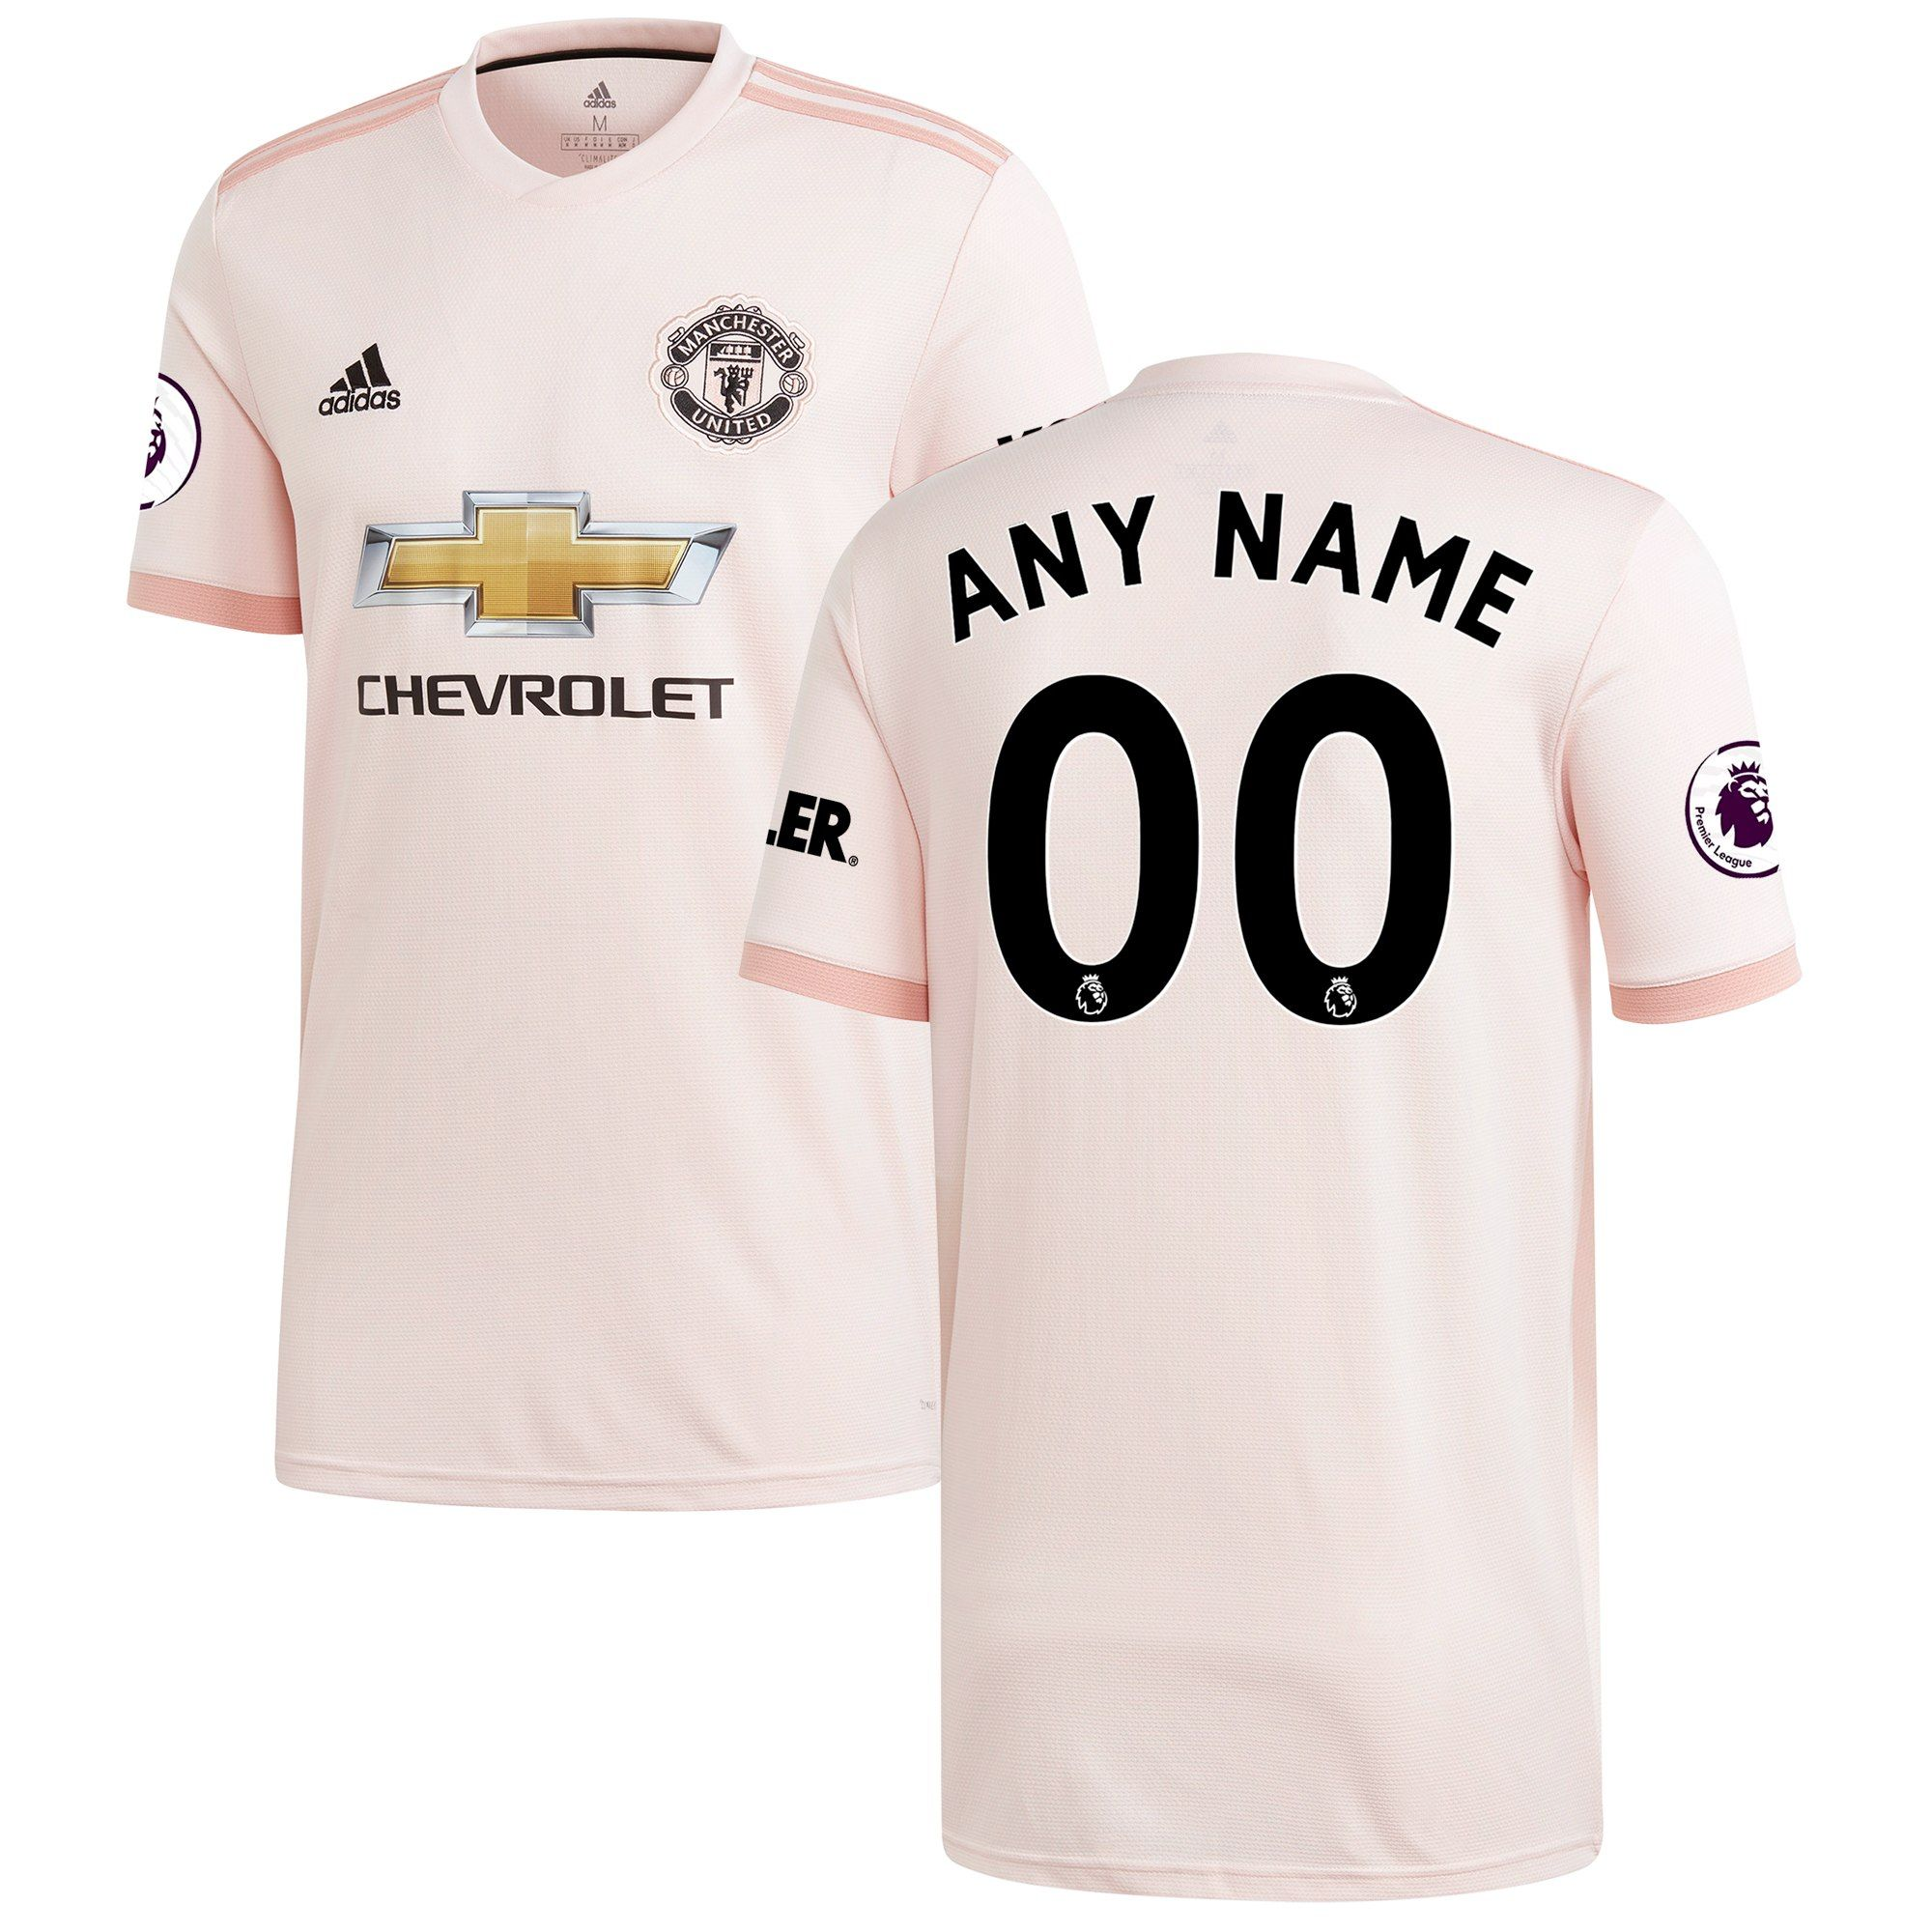 classic fit 8c3db 58792 2017-2018 Manchester United Away Jersey For Men (Personalized Name & Number)